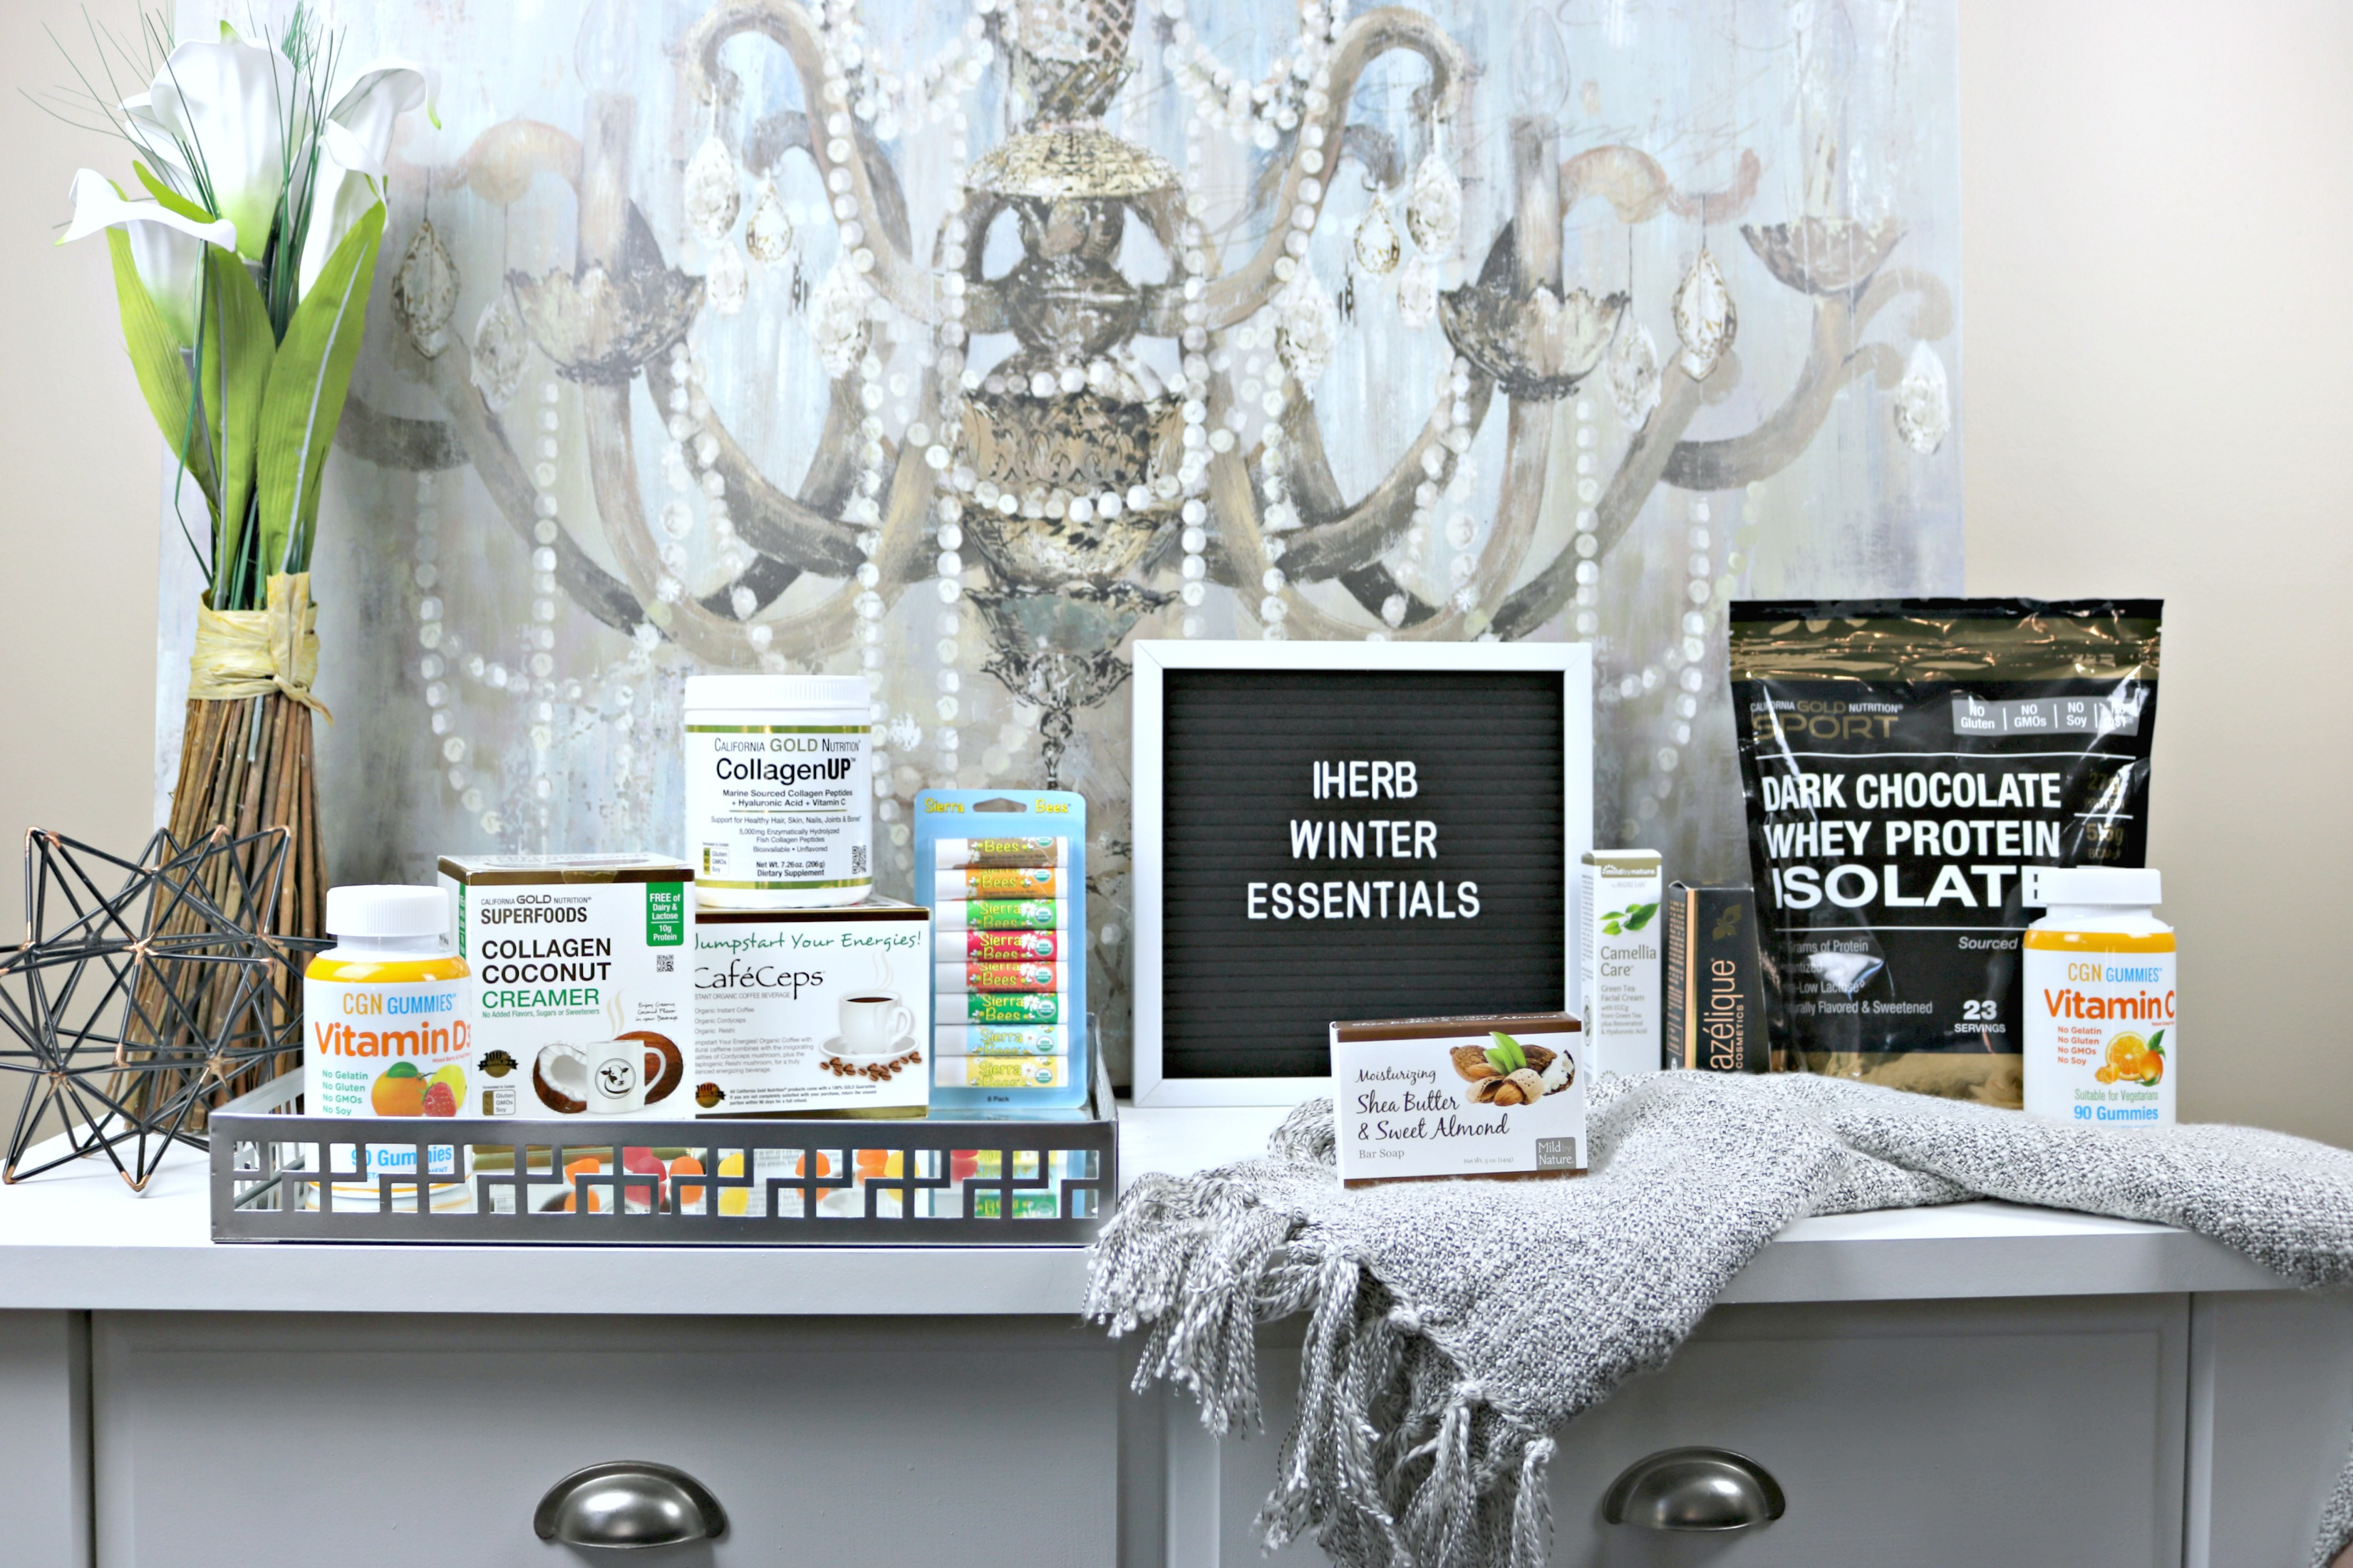 iHerb Winter Essentials on a buffet table and tray: Vitamins, coffee, creamer, vitamins, beauty products and more.